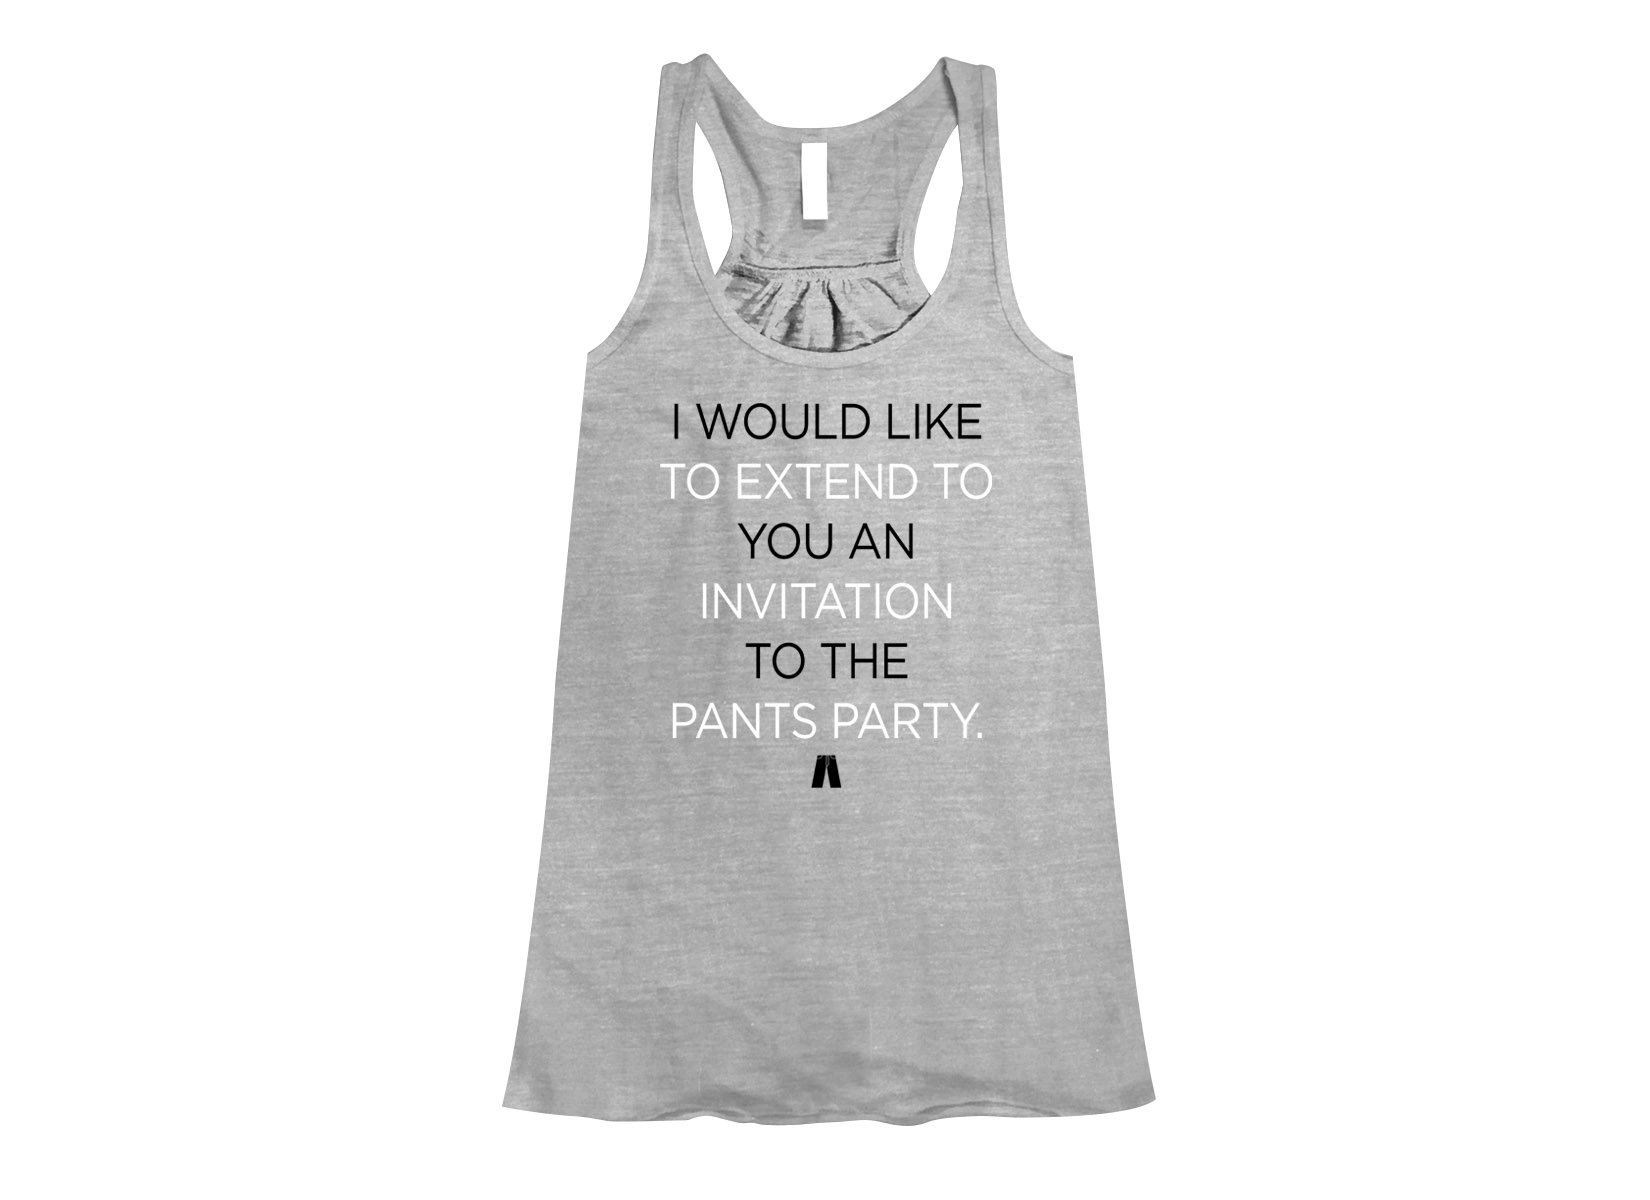 Invitation To The Pants Party on Womens Tanks T-Shirt